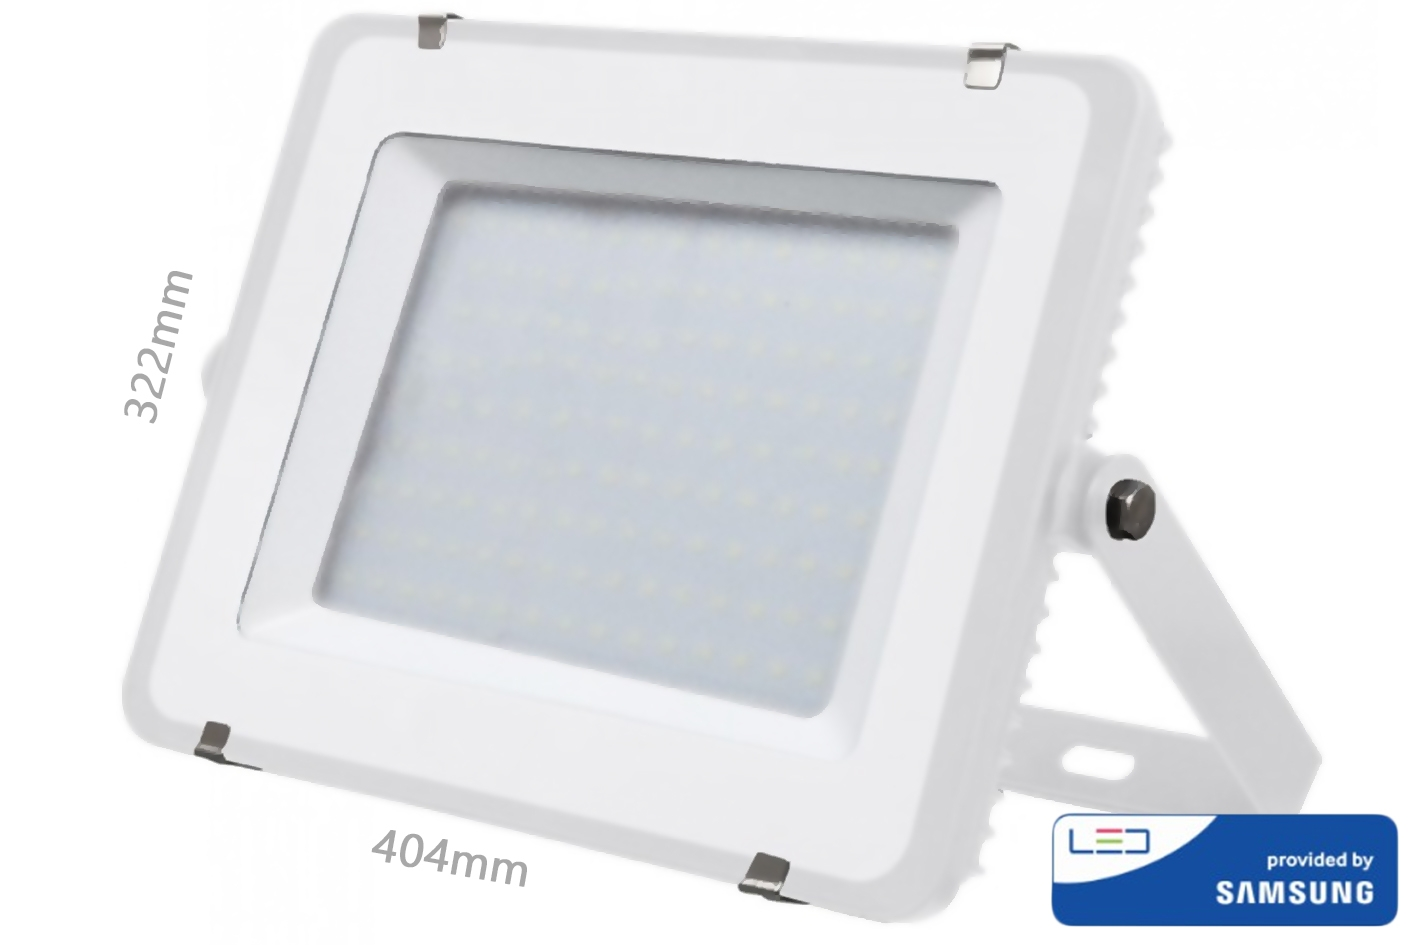 Faro Led Flood Light 150W IP65 Bianco Neutro Super Slim 52mm Carcassa Bianca Samsung Garanzia 5 Ann SKU-479 - KIT